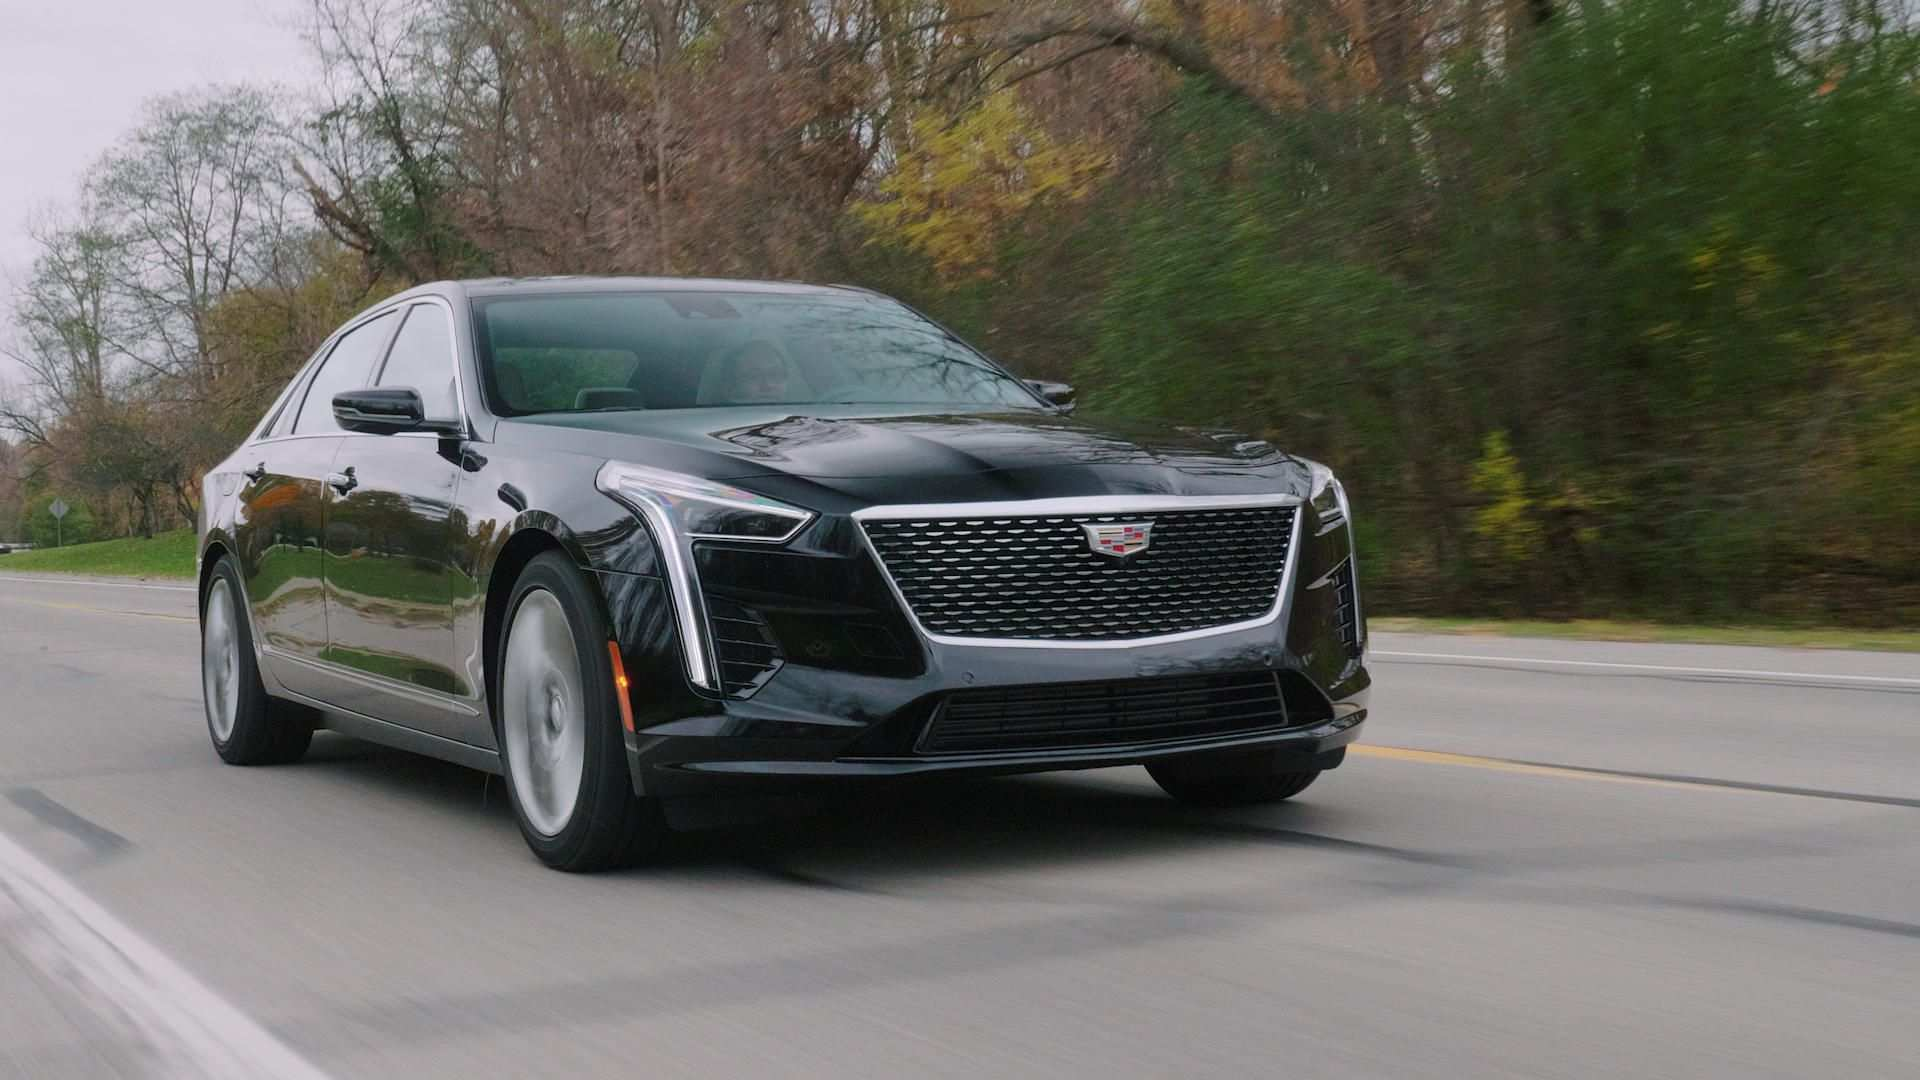 27 Best Review New Ct6 Cadillac 2019 Price Review And Specs First Drive by New Ct6 Cadillac 2019 Price Review And Specs